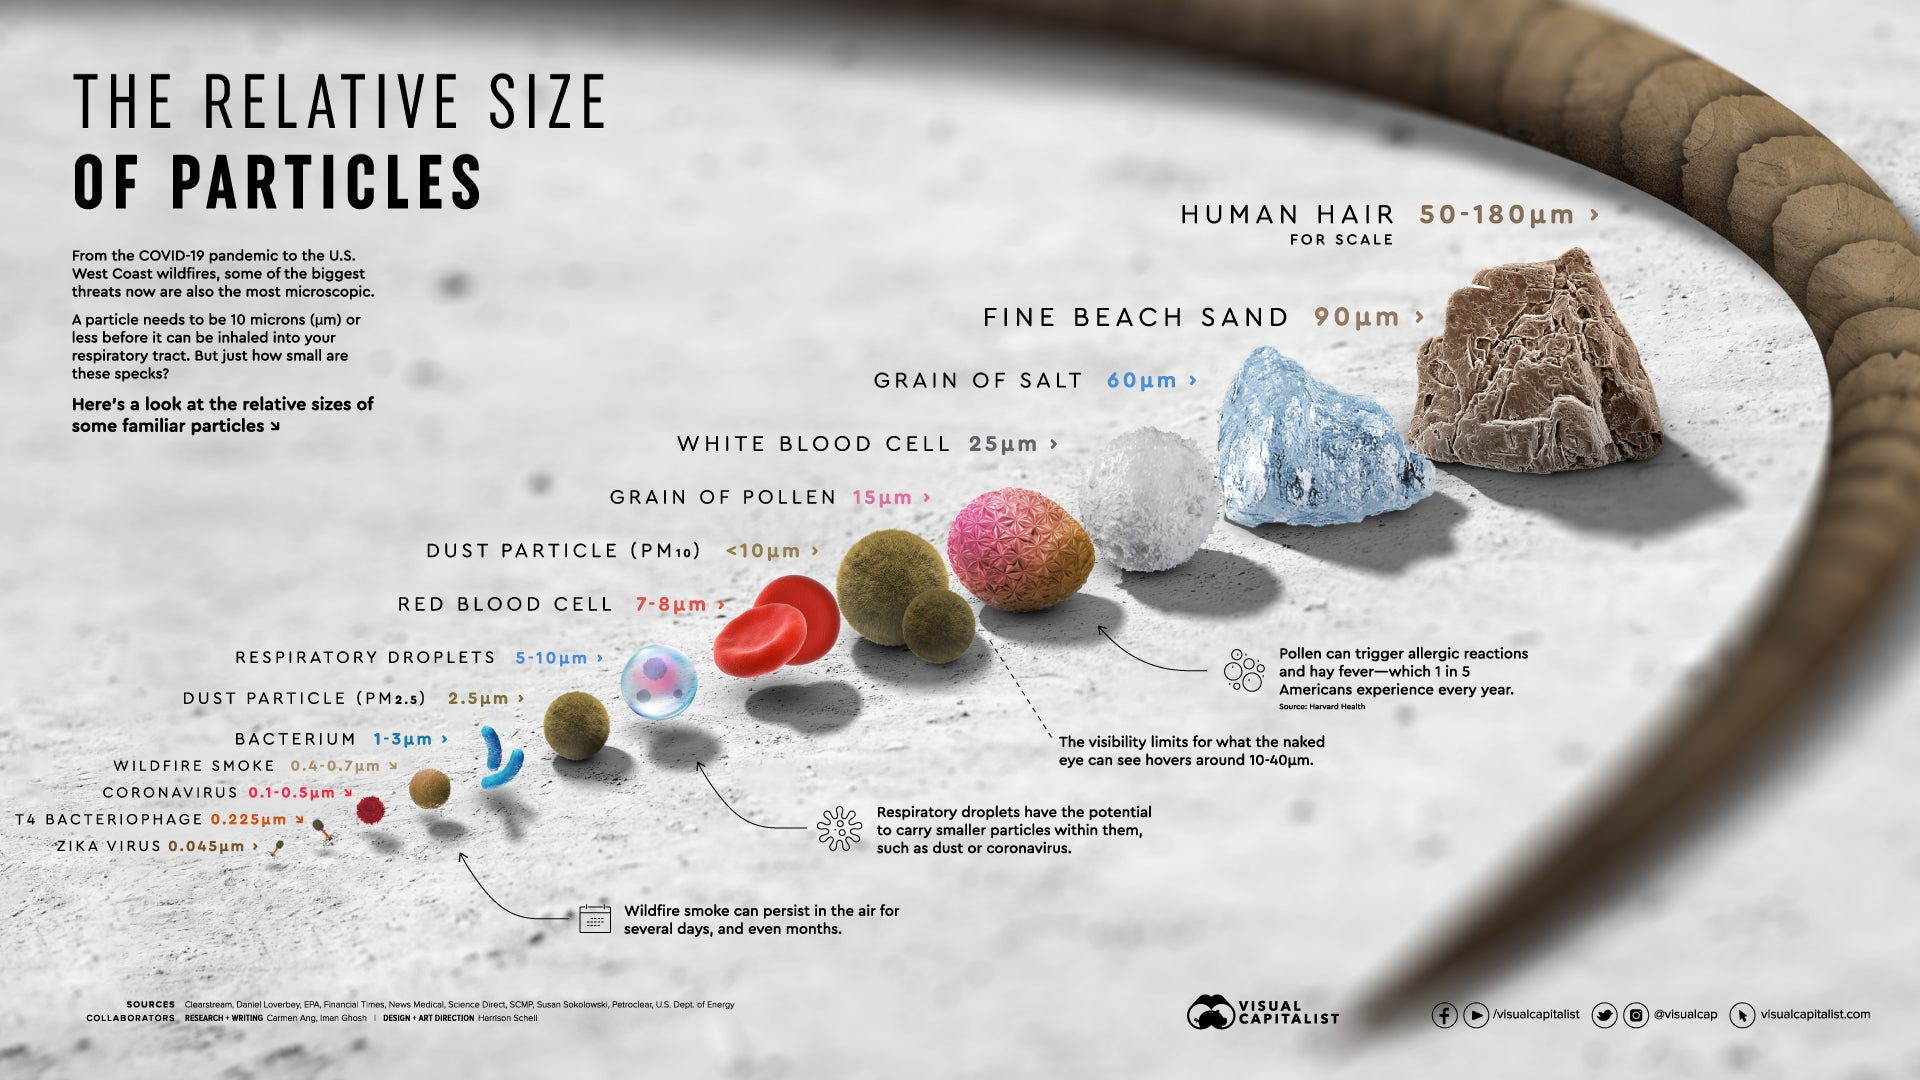 The size of some familiar particles in microns, from Visual Capitalist.